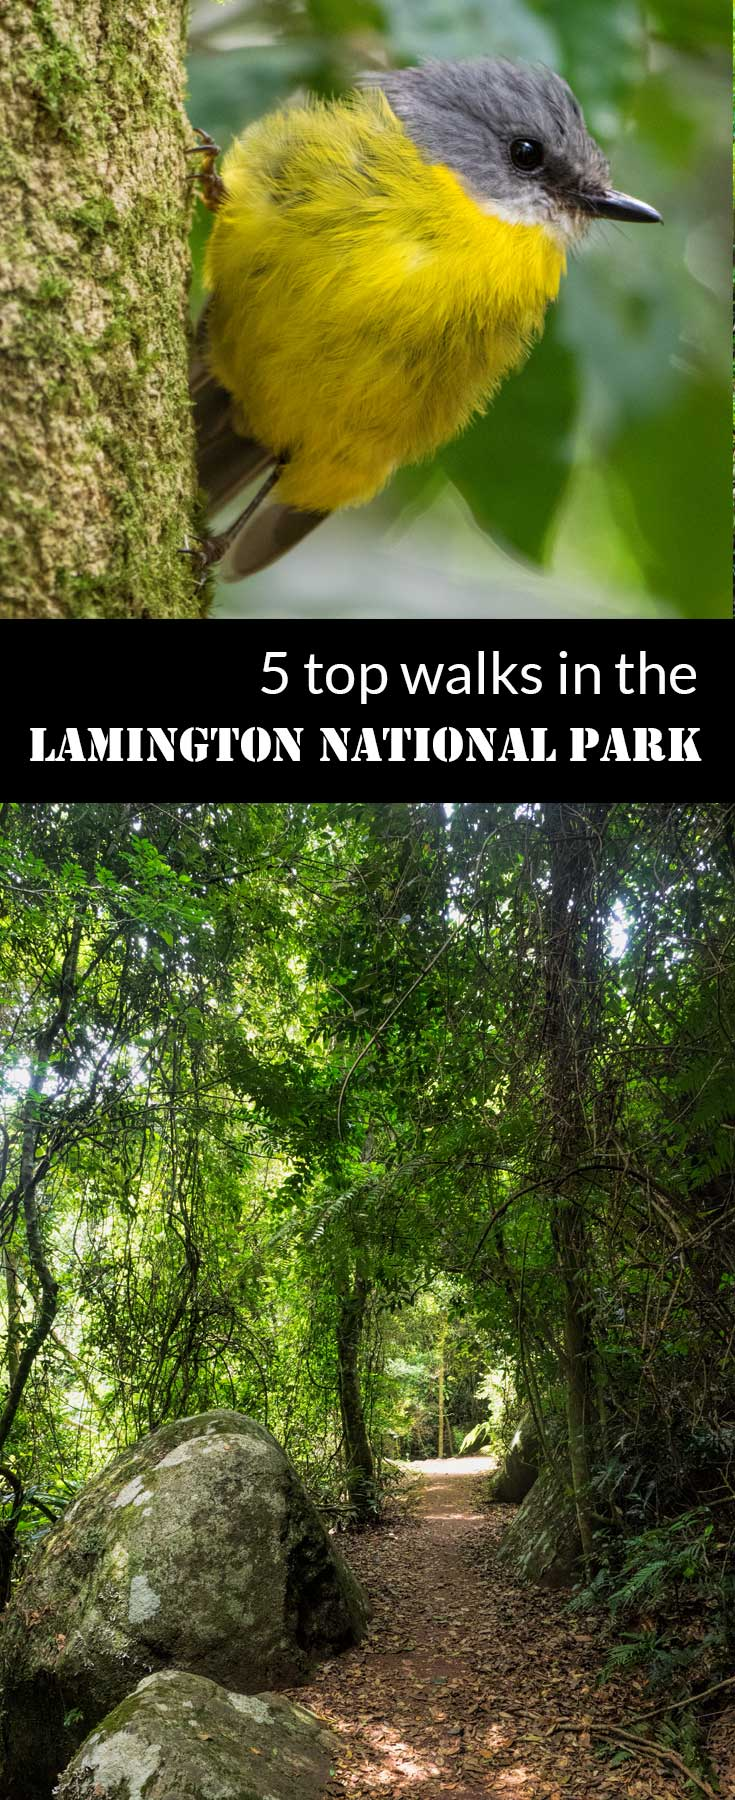 5 top walks in the Lamington National Park | Australia